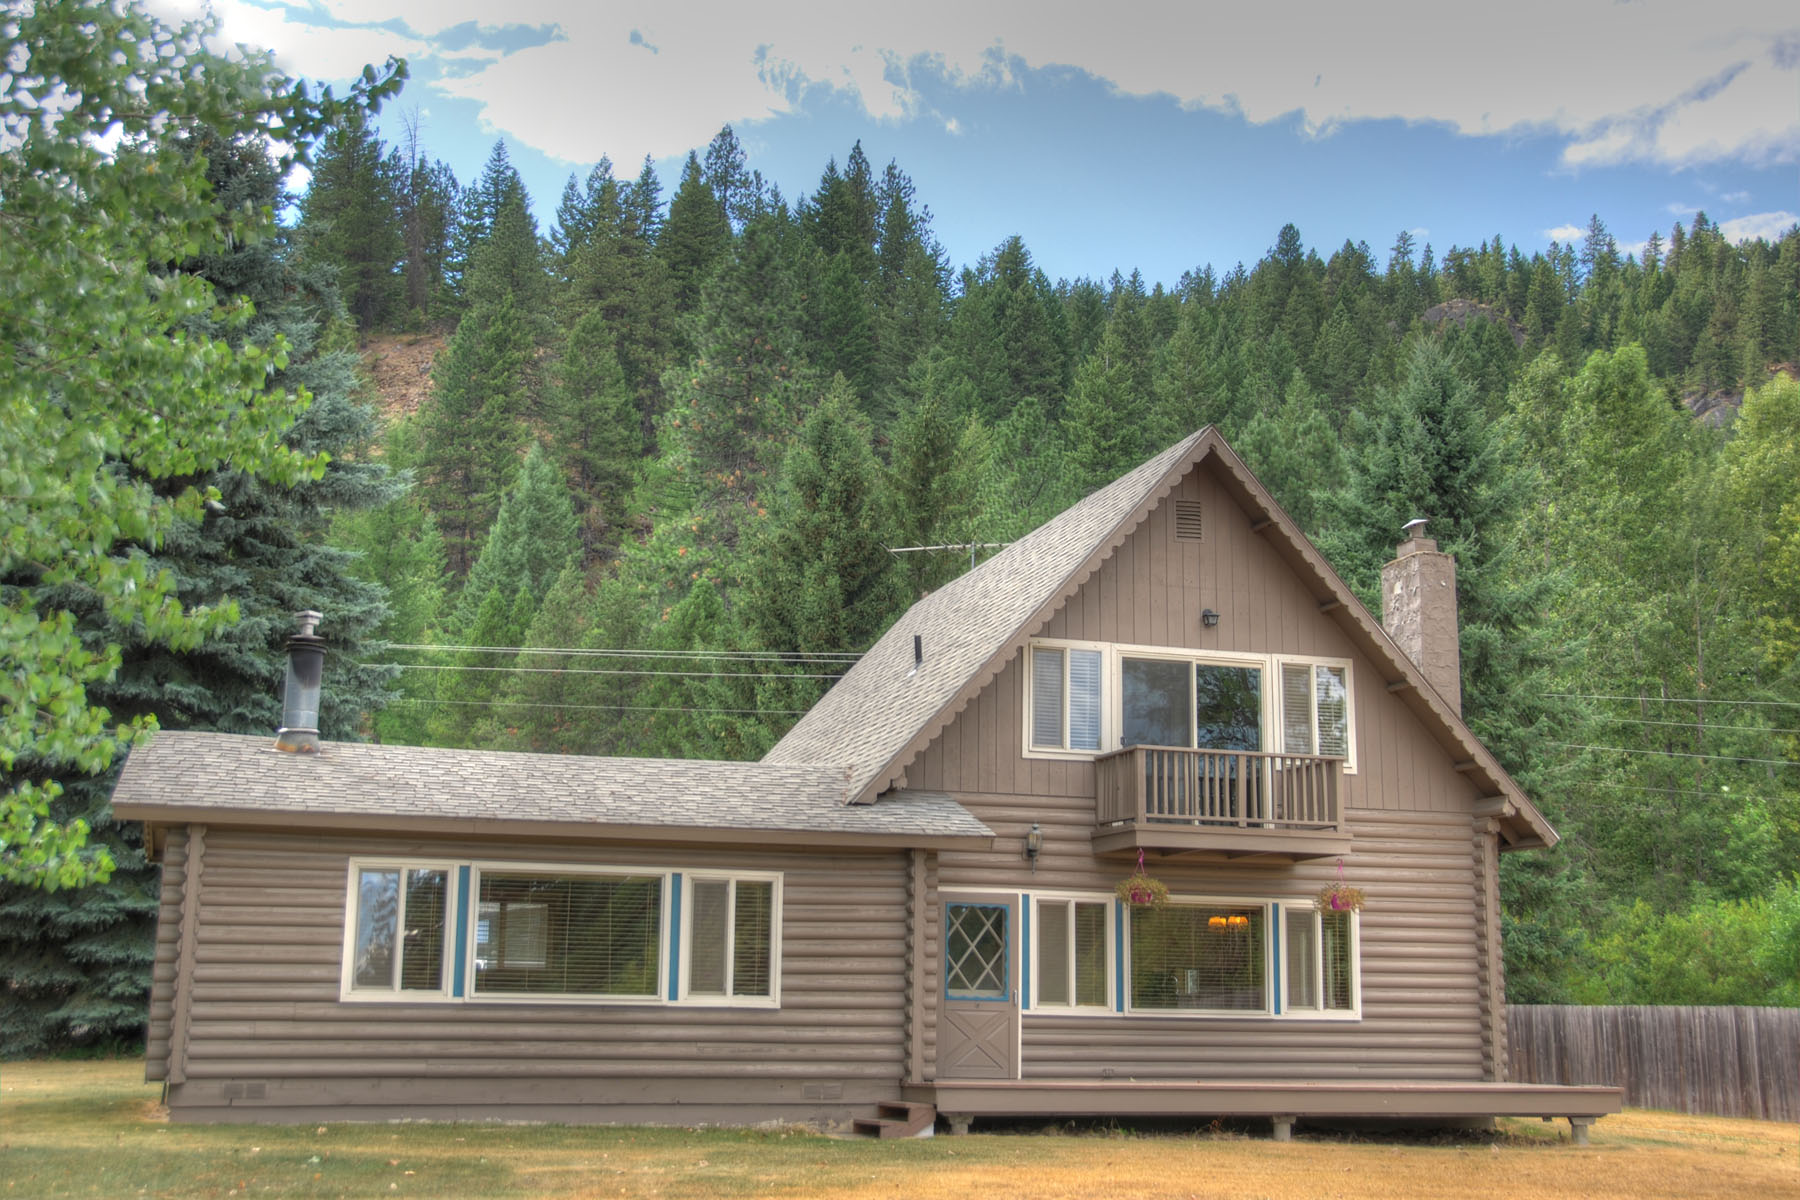 Single Family Home for Sale at Classic ski chalet, located at the base of Schweitzer Mountain 31 Granite Ridge Dr Sandpoint, Idaho, 83864 United States